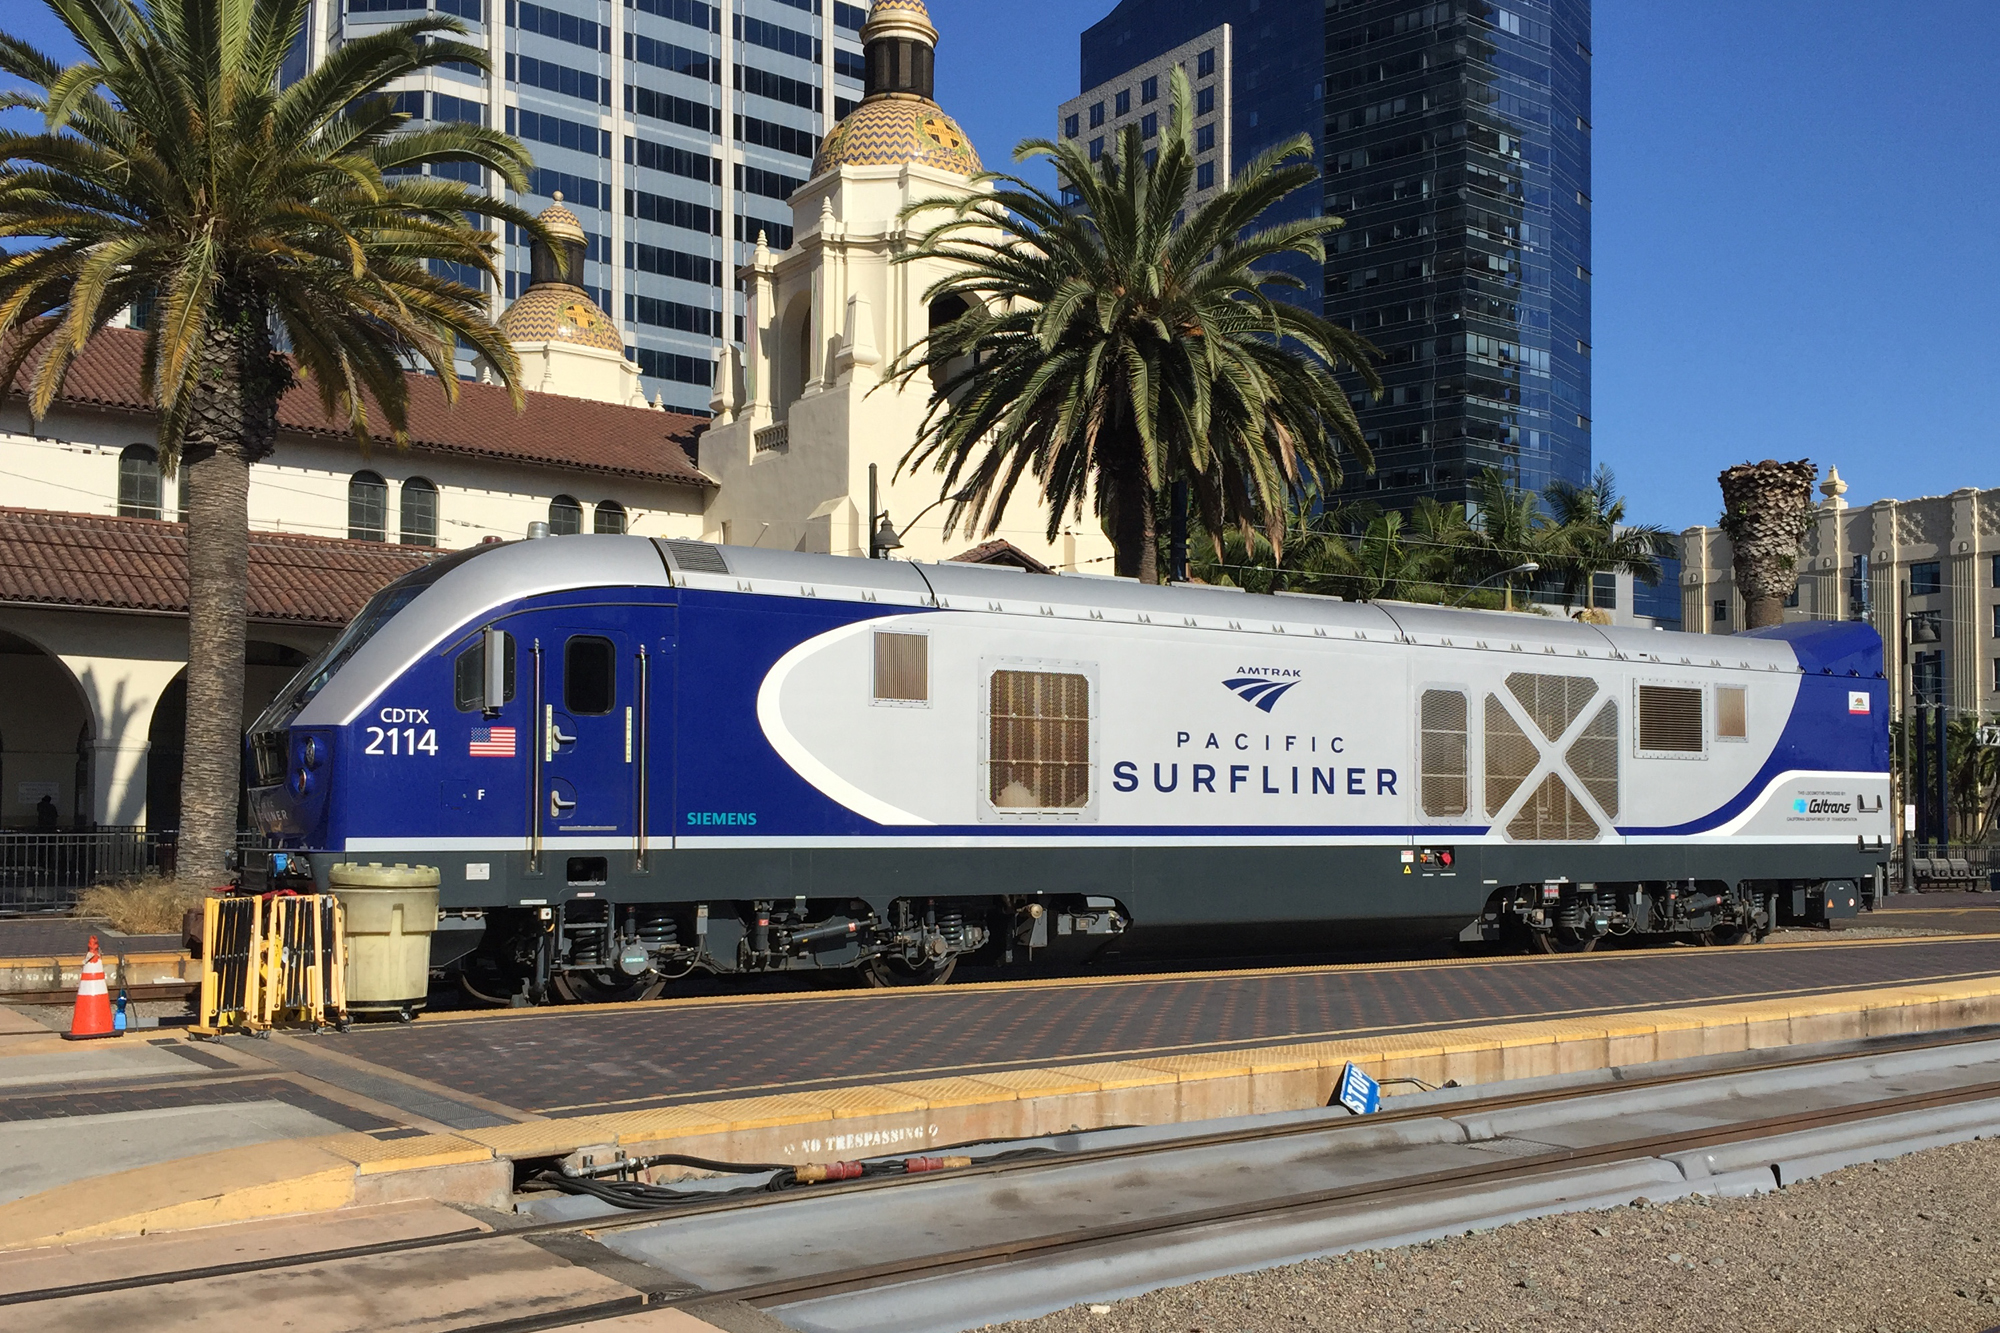 Pacific Surfliner at the Santa Fe train station at downtown San Diego (California, USA).